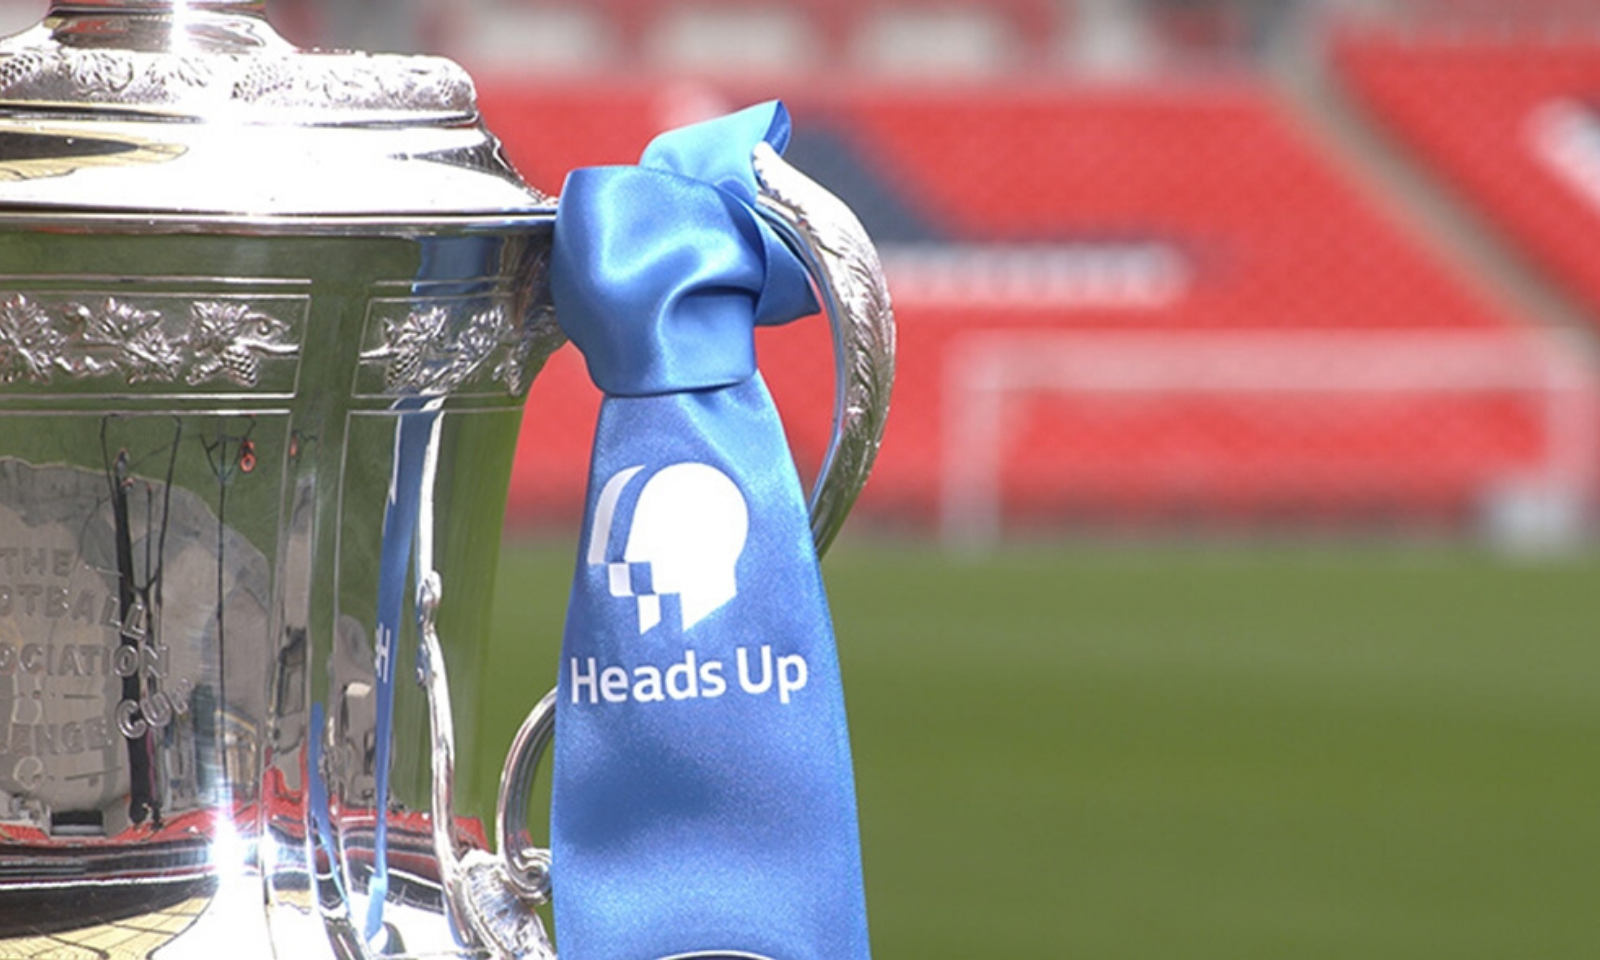 the Heads Up FA Cup Final trophy